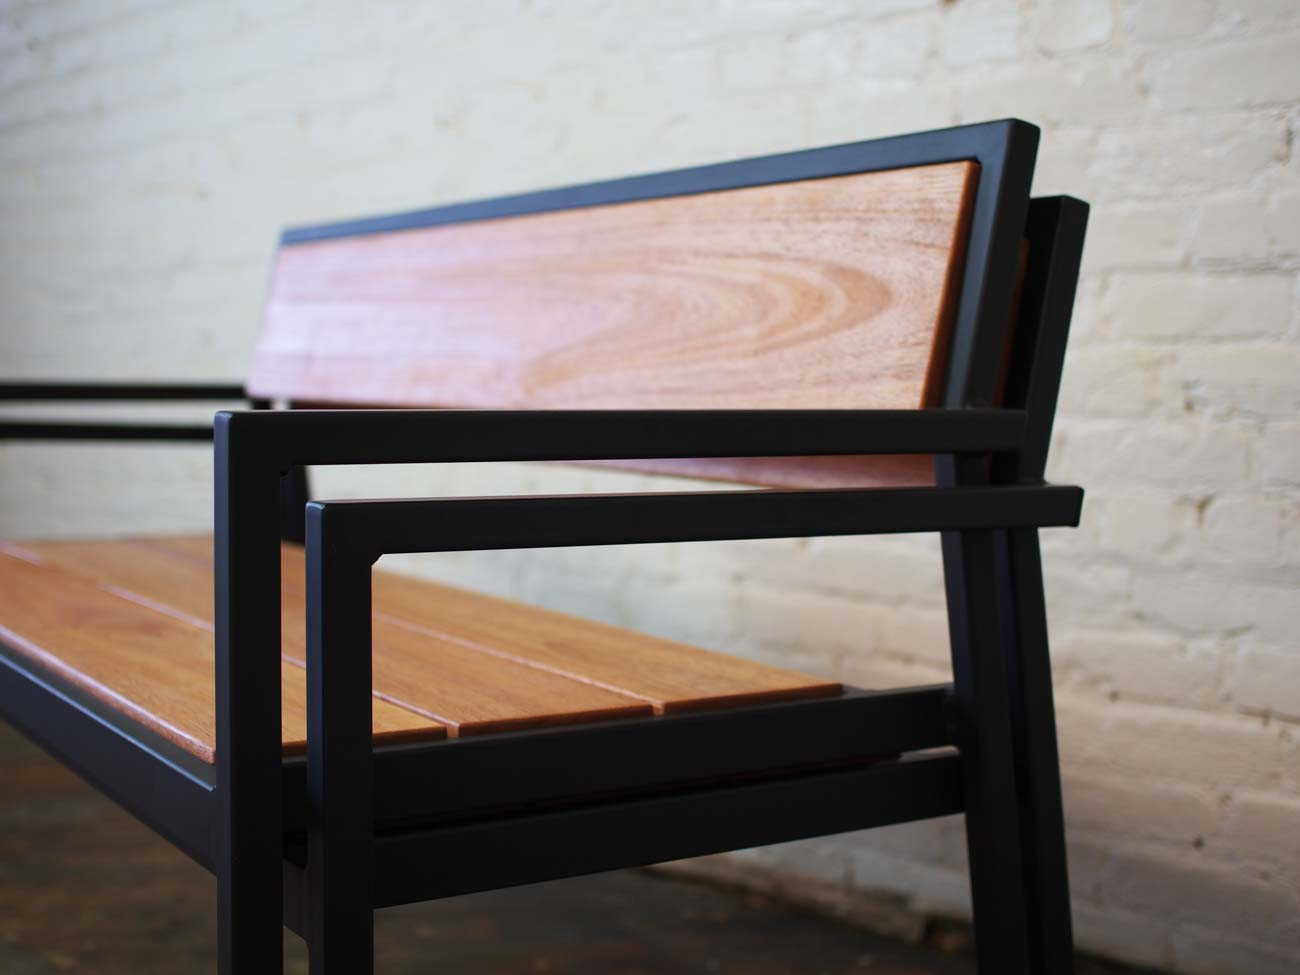 Benches that you'll find at The Hannaford in Covington / Image courtesy of Sediment Design // Published: 9.24.20